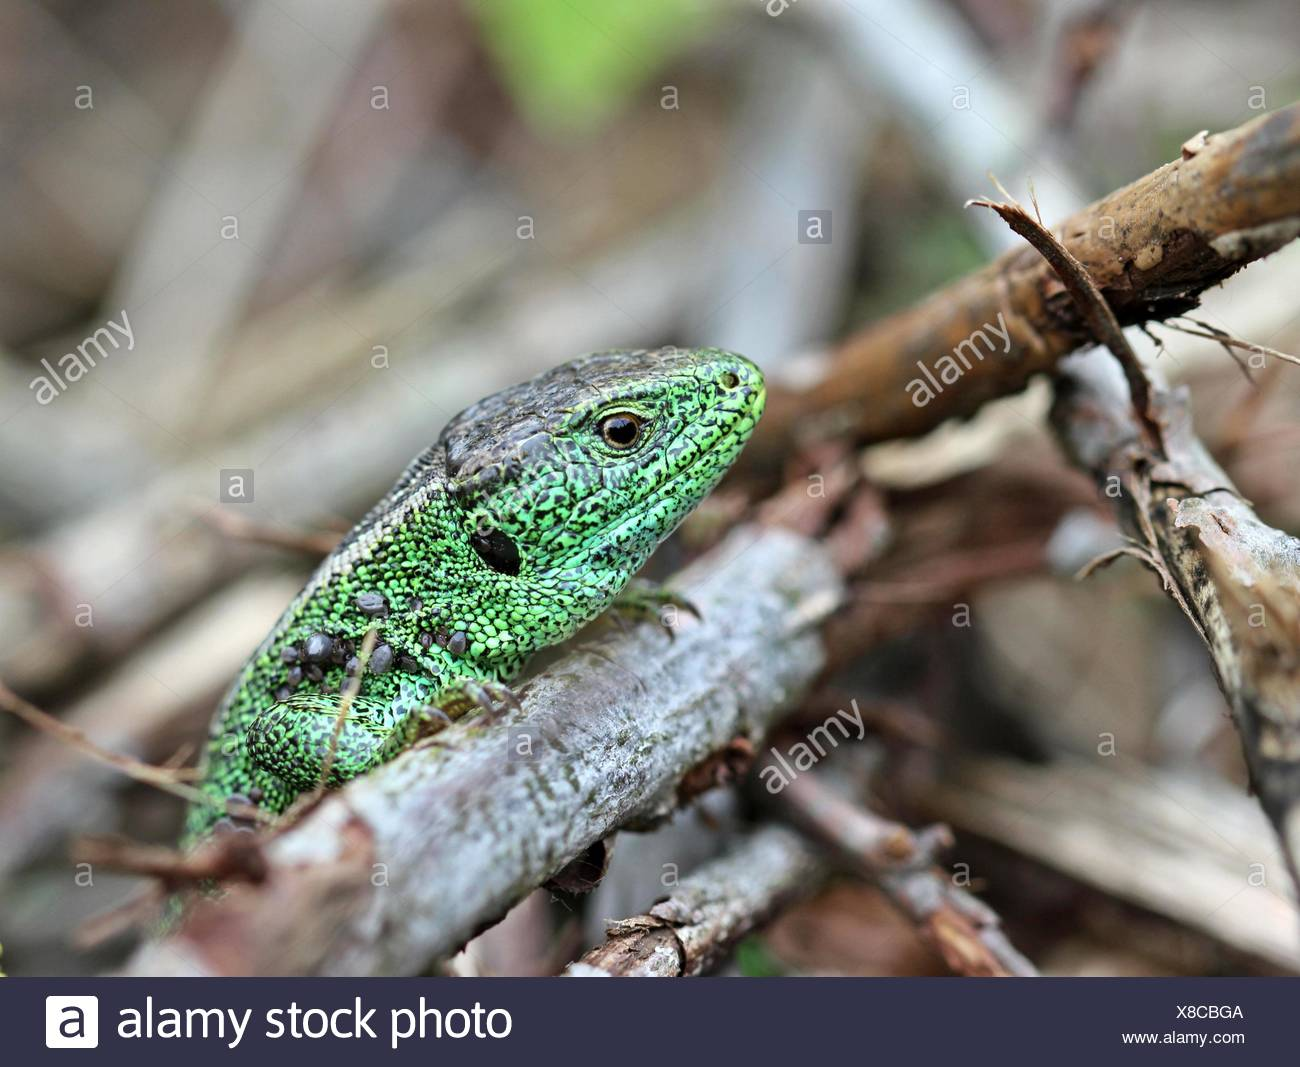 green, lizard, male, masculine, rare, tick, protected, sheltered, reptile, - Stock Image